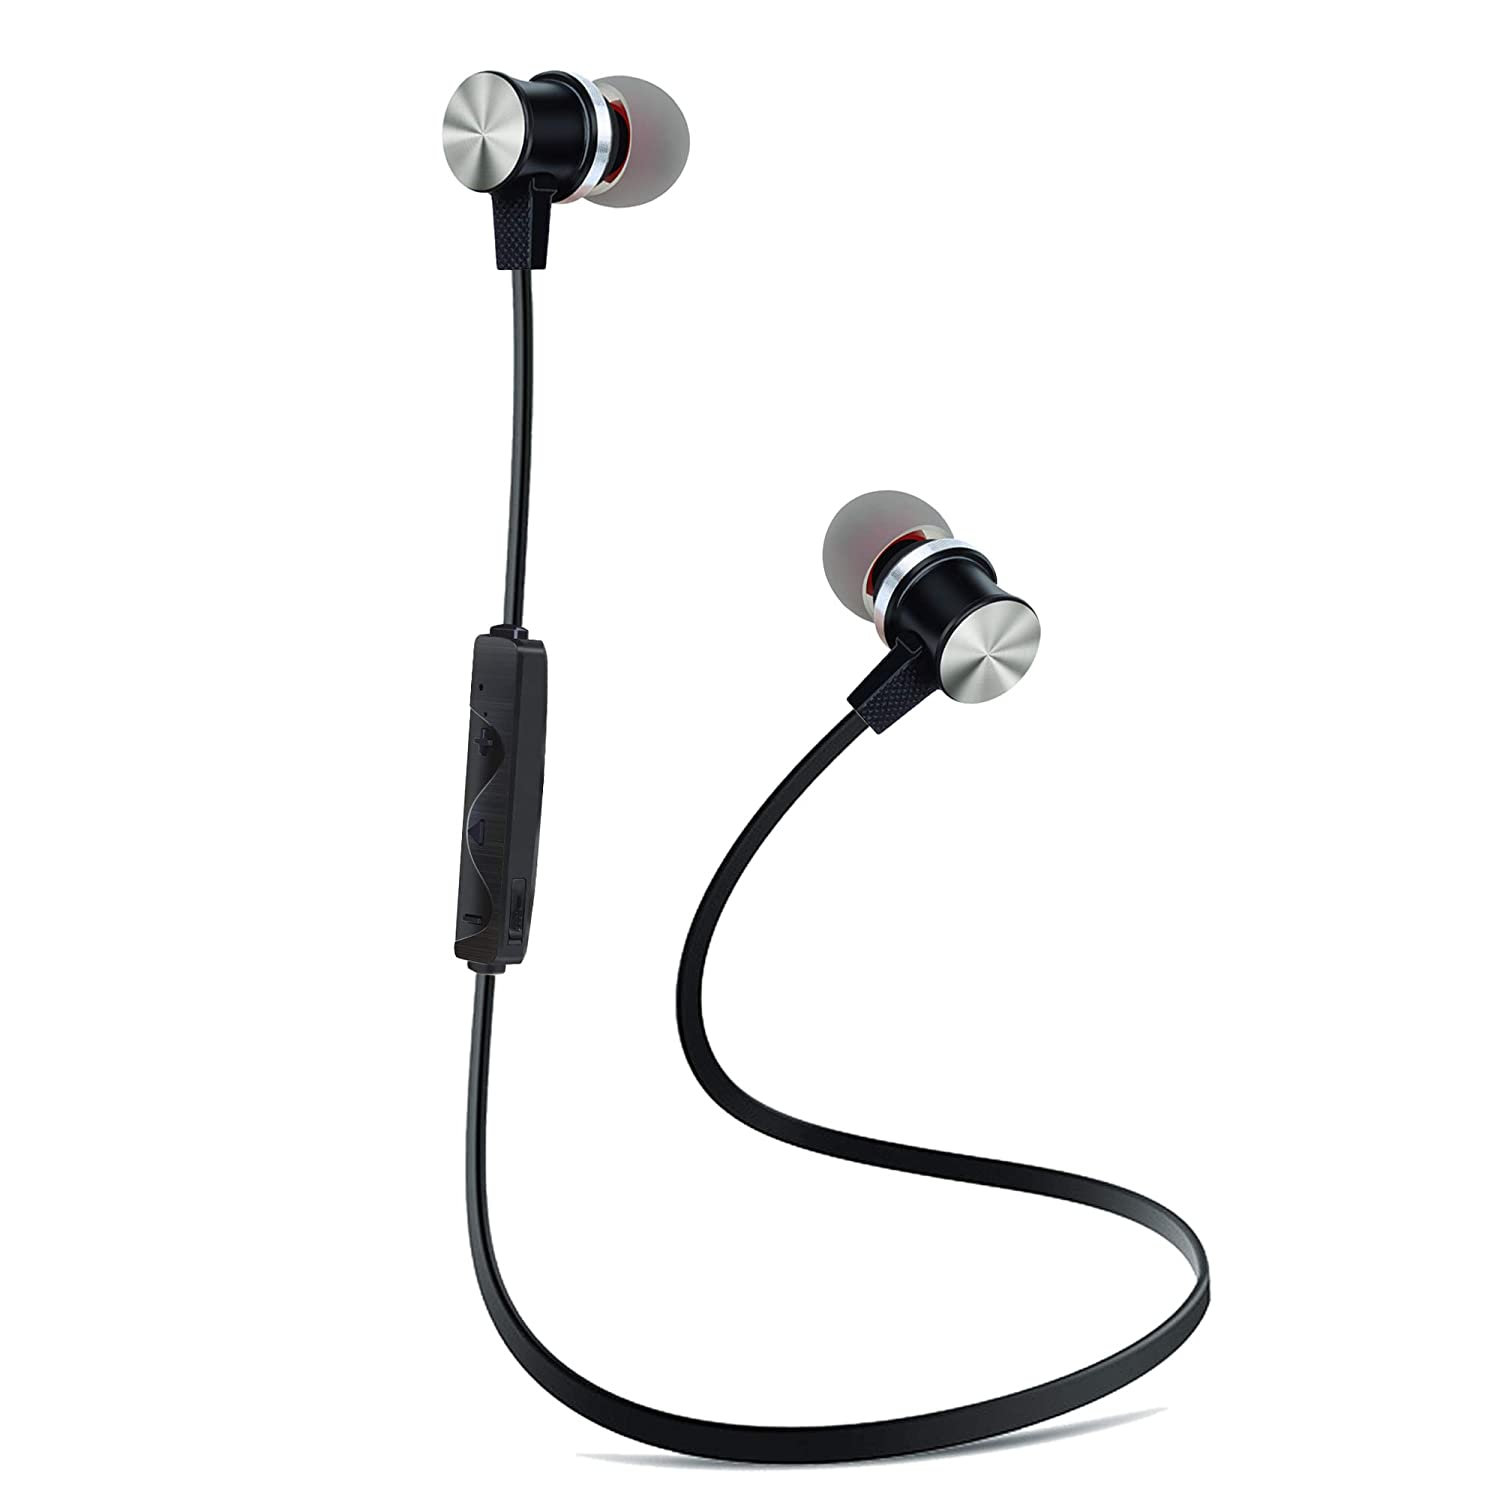 Bluetooth Earphones with Microphone, BYZ1 Bluetooth V4.2 Wireless Headphones in Ear Earbuds Deep Bass HiFi Stereo Sound, 8 Hrs Playtime for Travel, Work (Black)